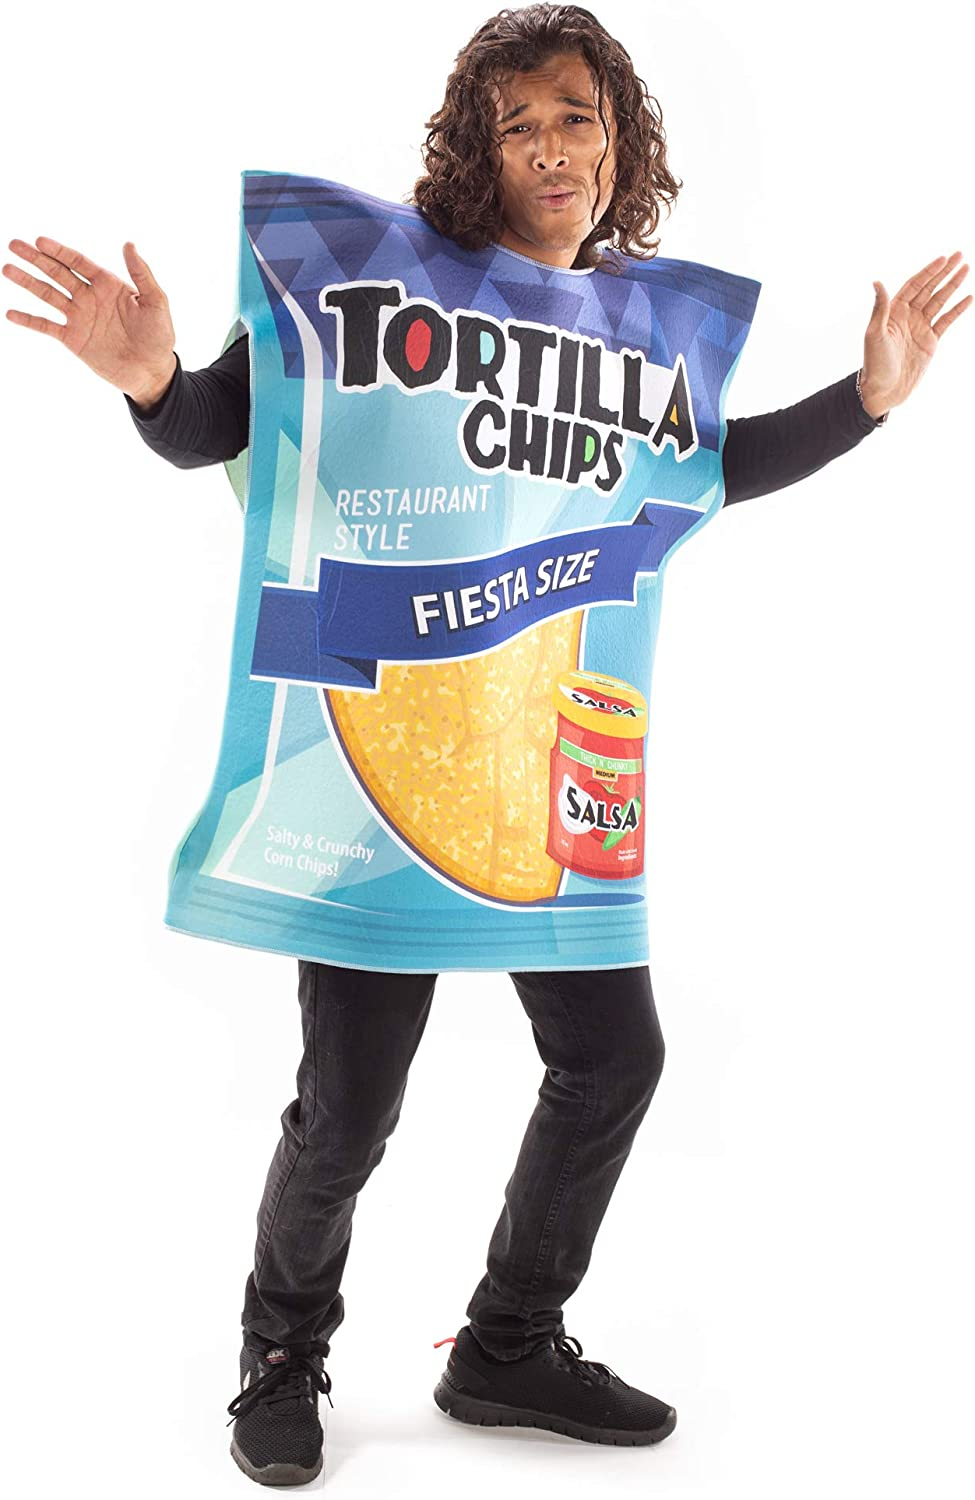 Tortilla Chips Halloween Costume - Funny Food Suit - Cute Adult One Size Outfit